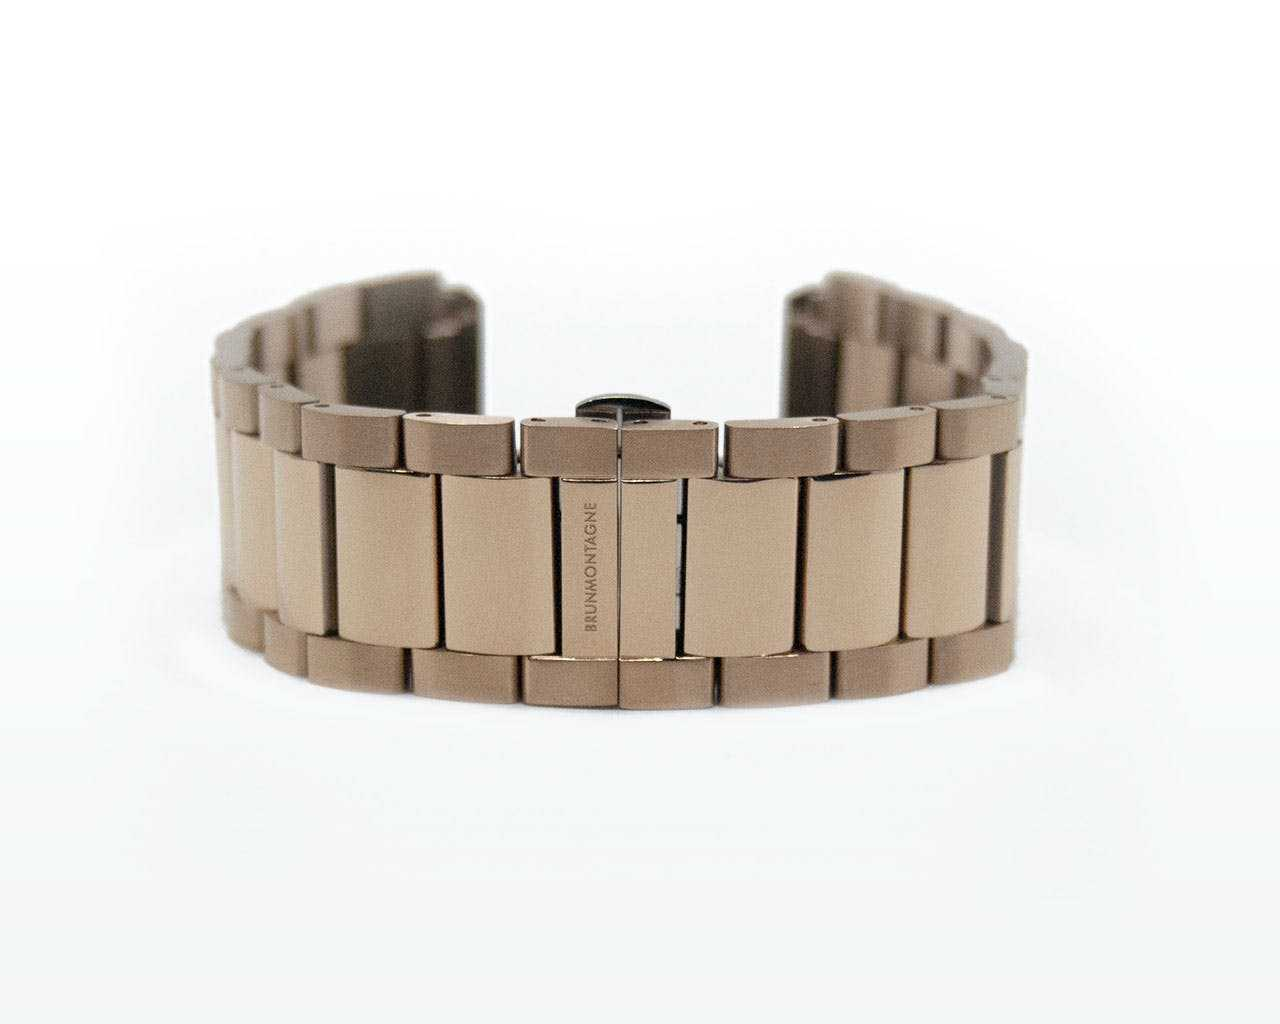 Rose gold strap for Representor - closed